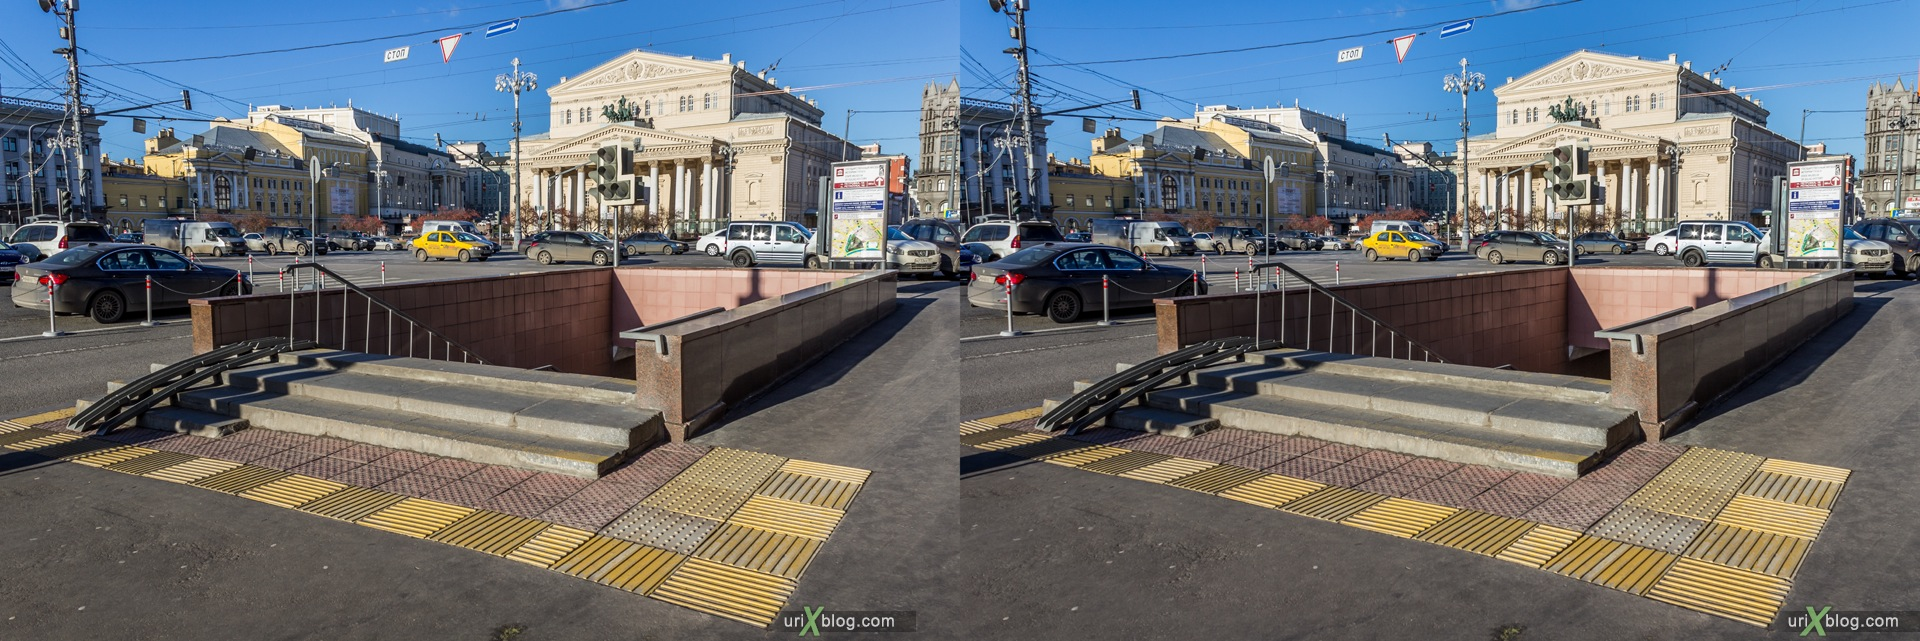 2013, Moscow, Russia, Teatralnaya square, Theatre square, subway, underpass, Bolshow theatre, Grand theatre, 3D, stereo pair, cross-eyed, crossview, cross view stereo pair, stereoscopic